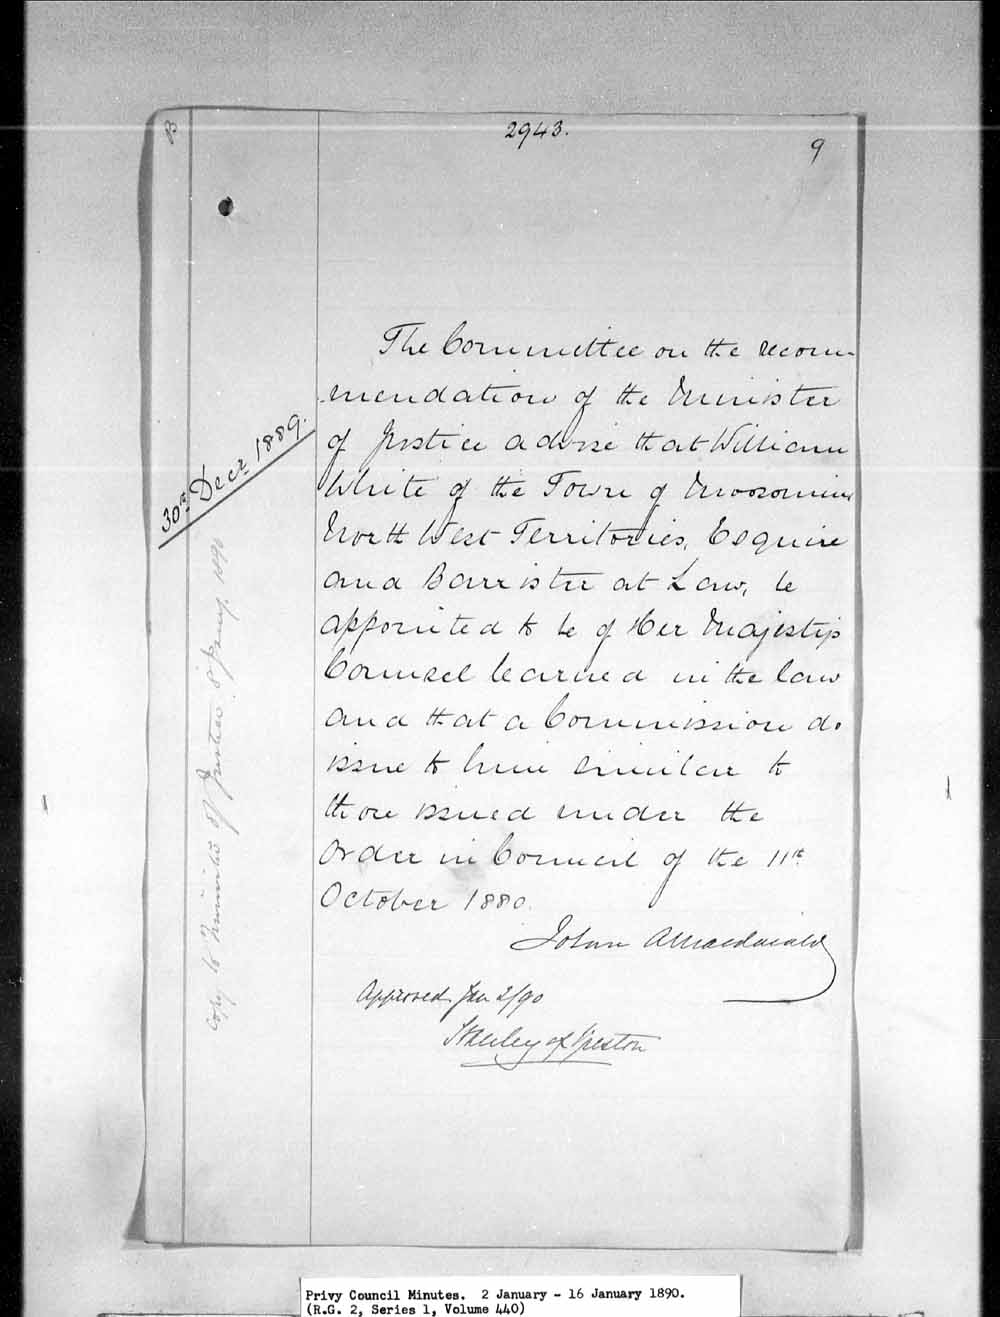 Queens Counsel for Northwest Territories - Min [Minister of] Justice, 1889/12/30, recs [recommends] appointment of Wm [William] White, Moosomin, Northwest Territories as a